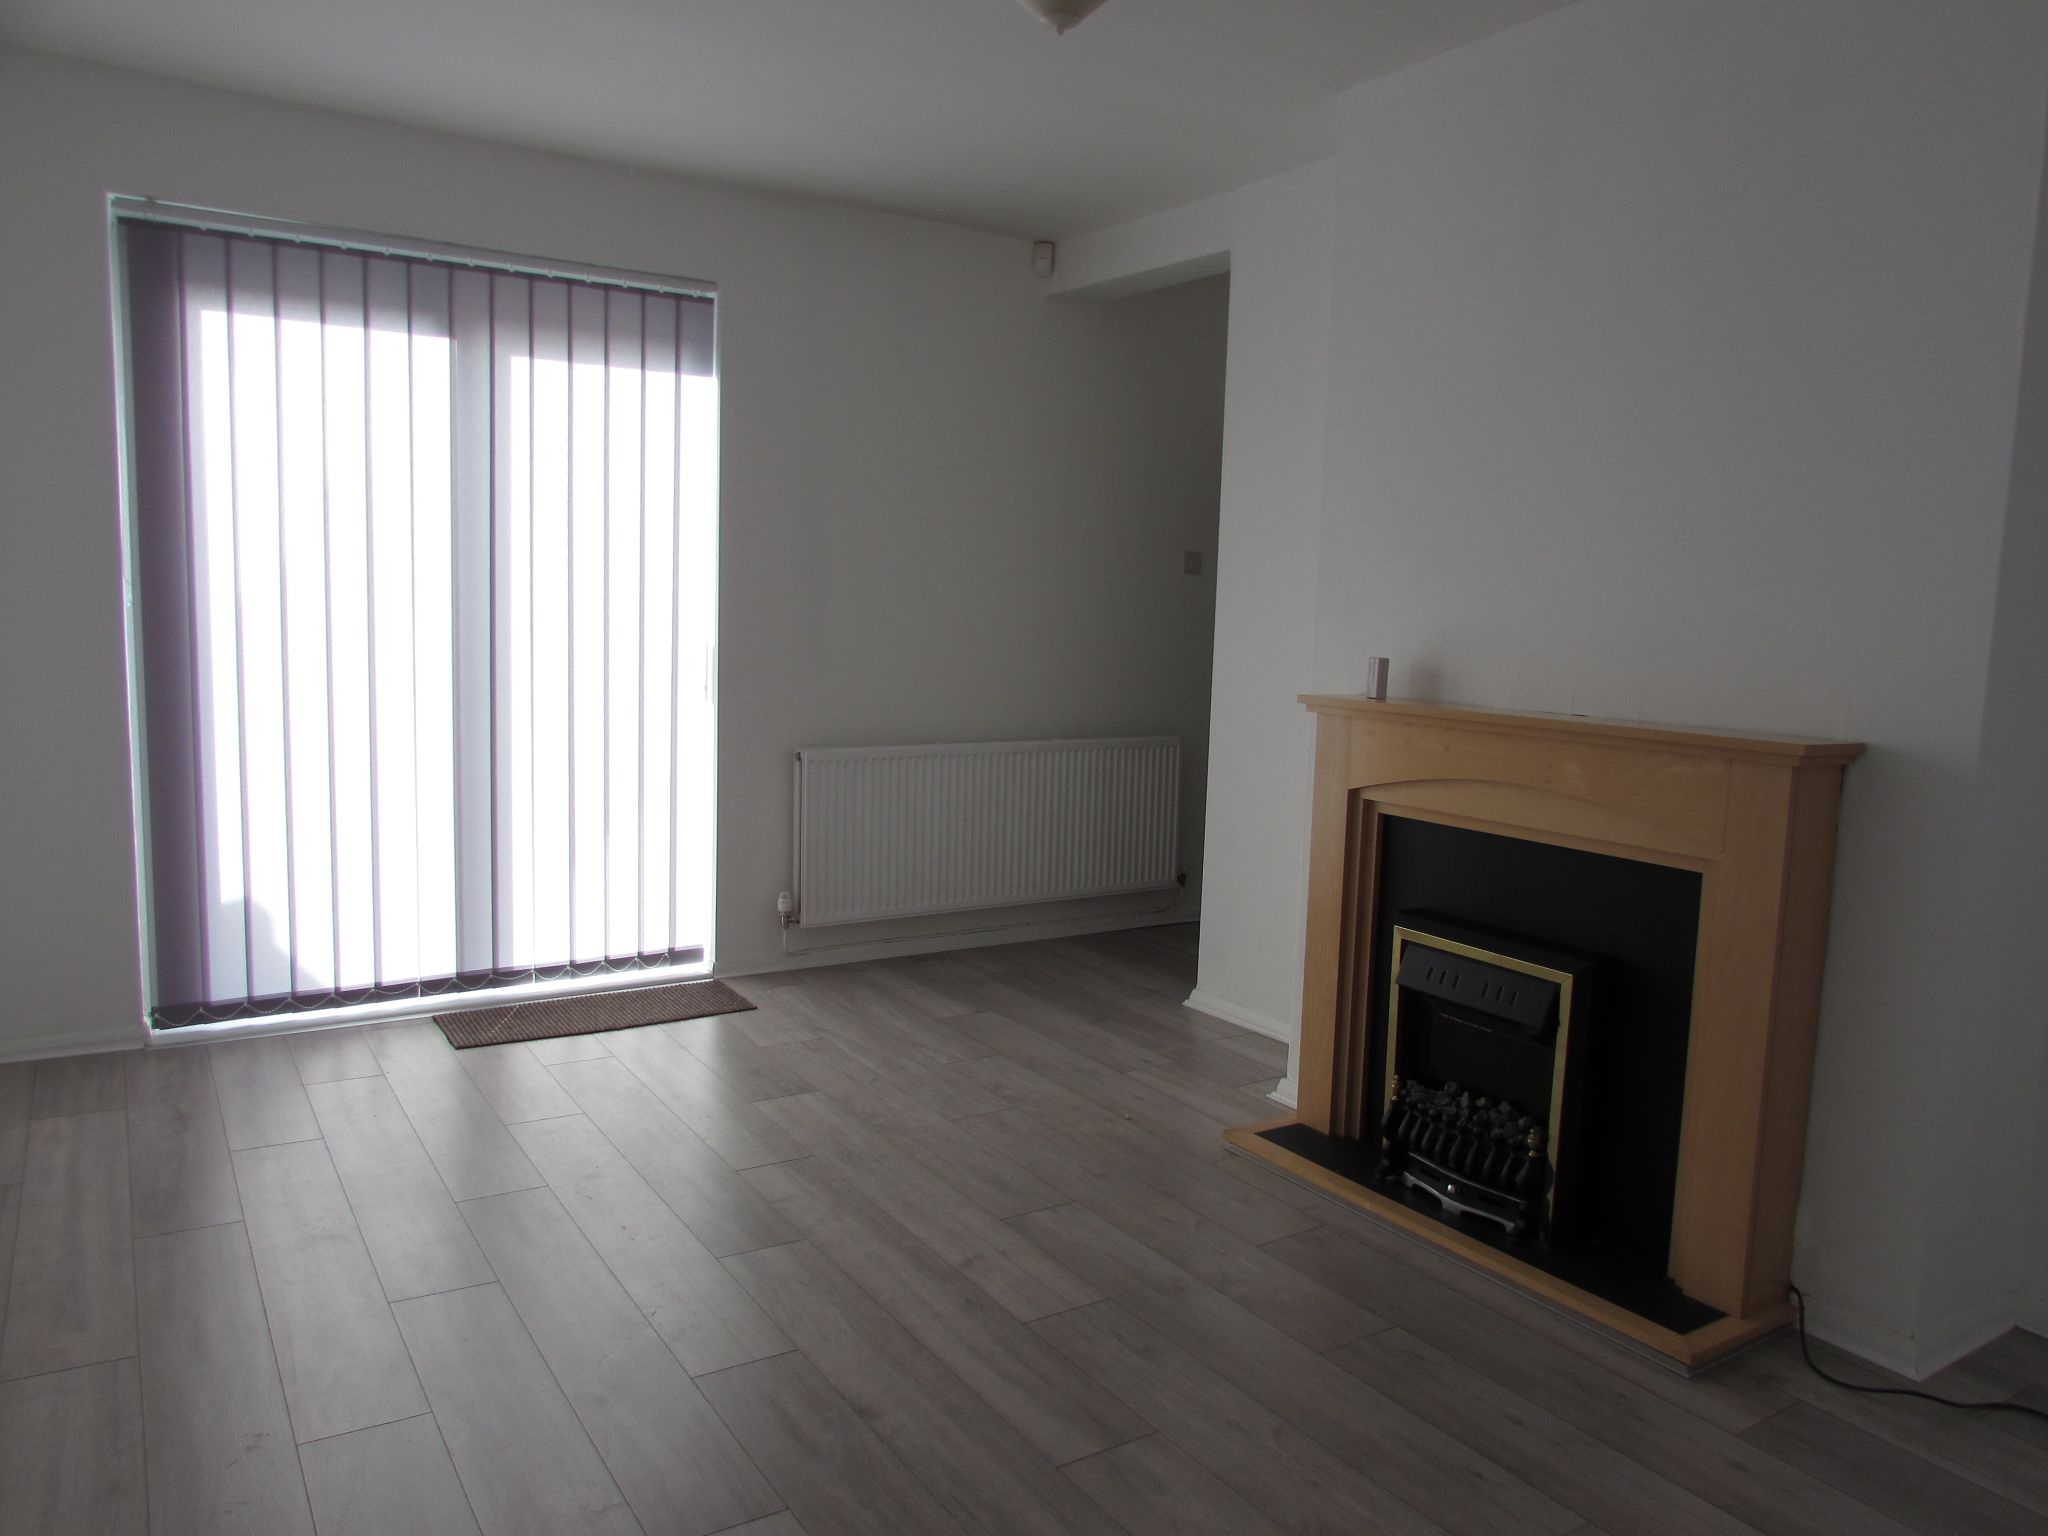 2 Bedroom Ground Floor Flat/apartment To Rent - Photograph 3